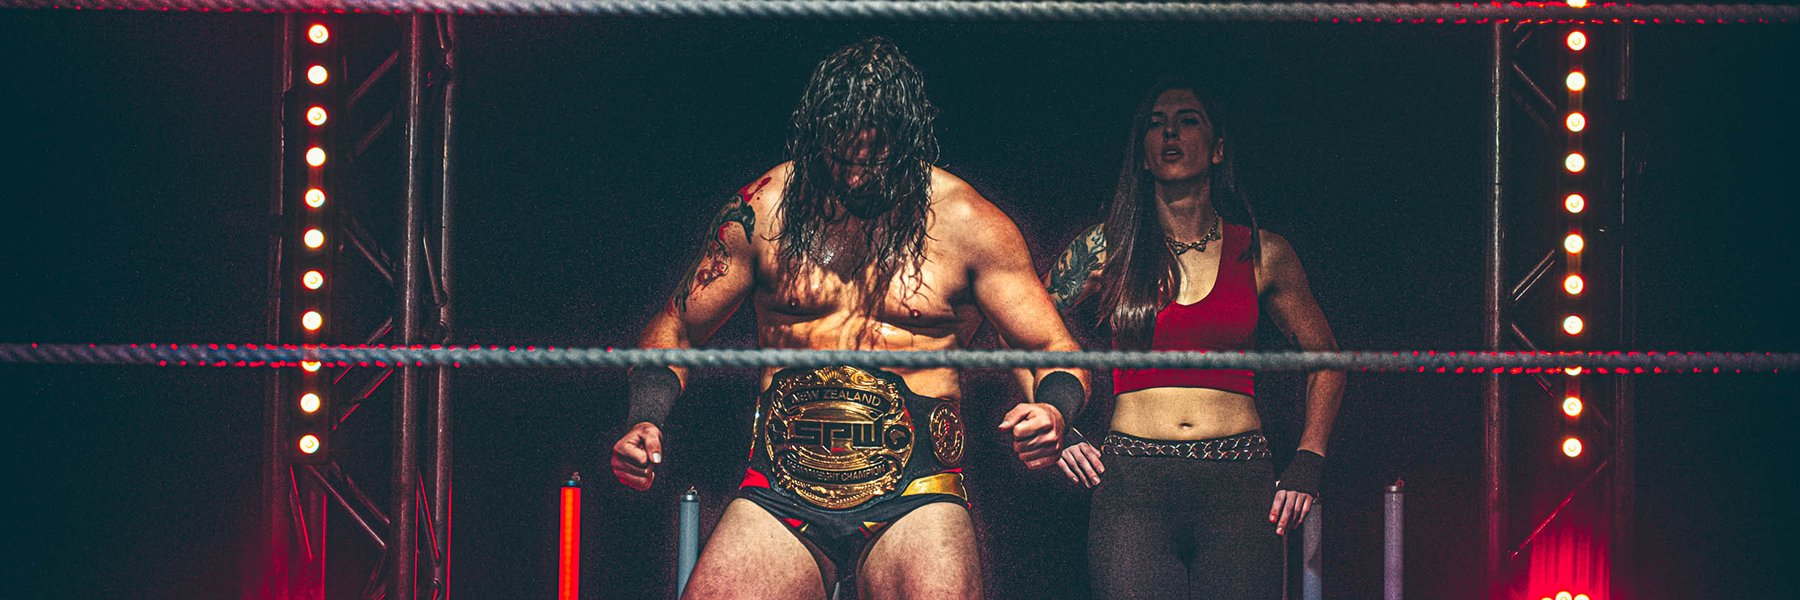 FREE TO WATCH: QUEENSTOWN WRESTLEFEST 2020